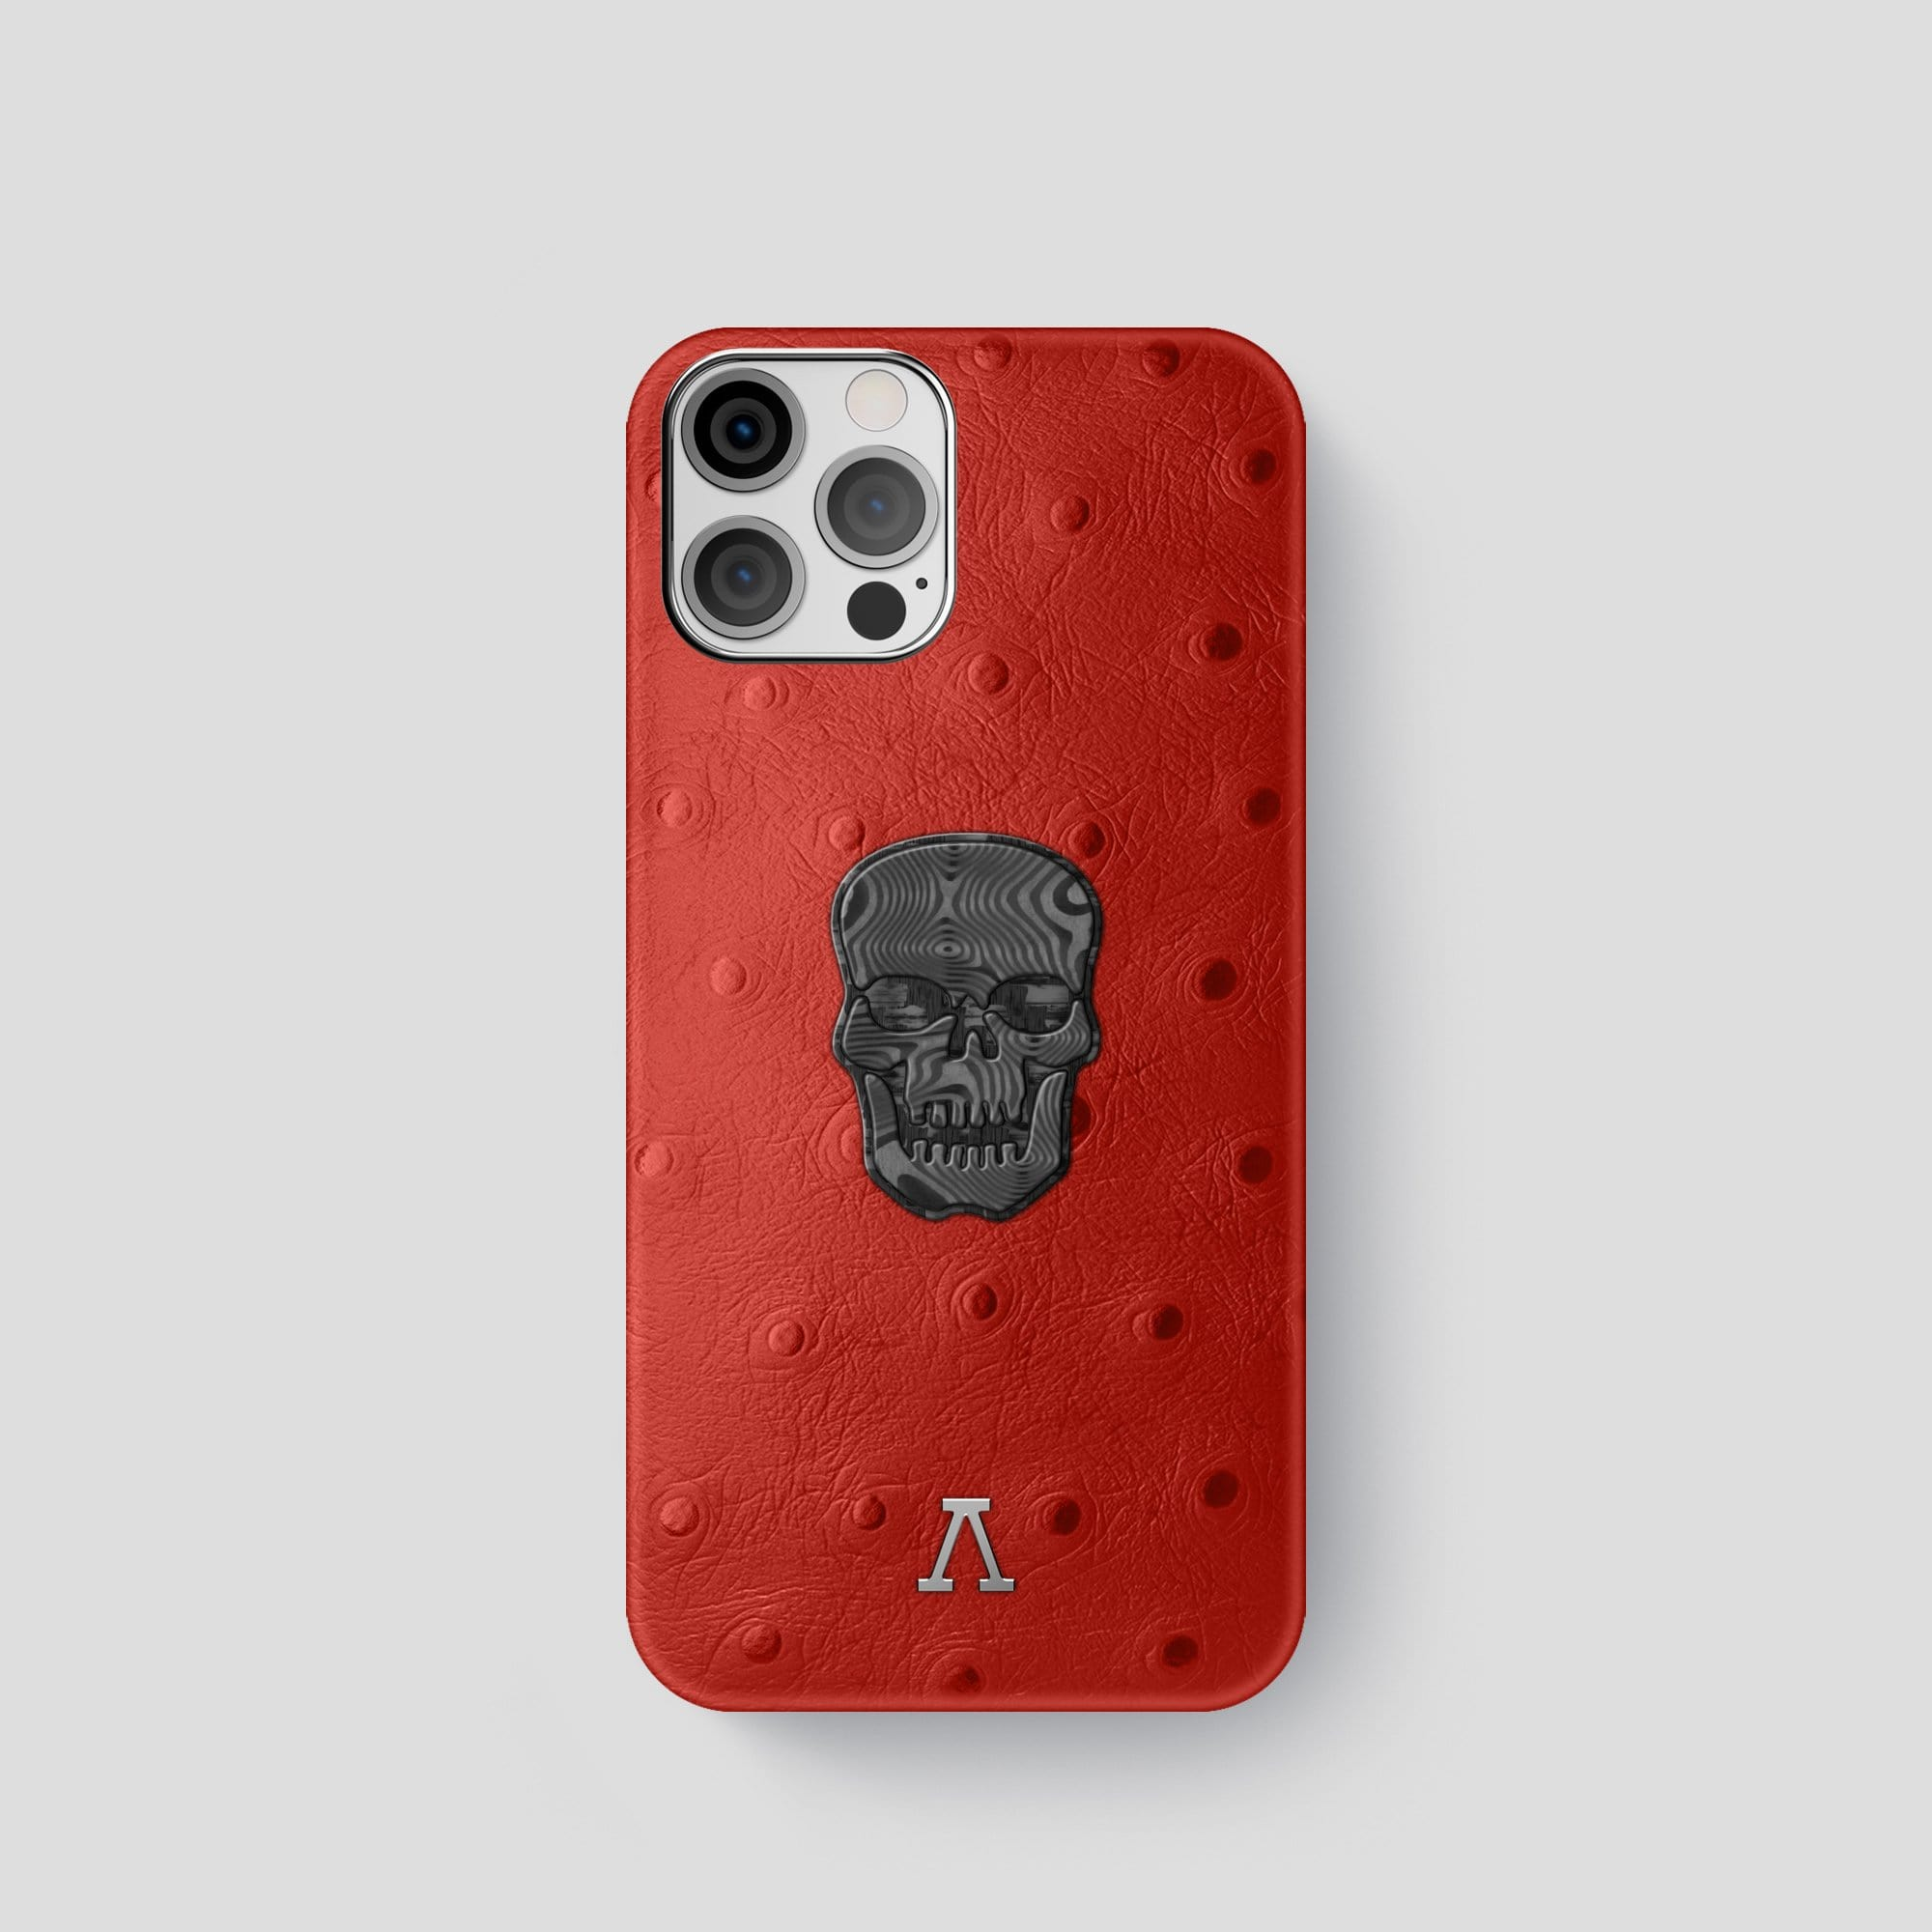 iPhone 12 Pro Classic Case Ostrich with Carbon Skull